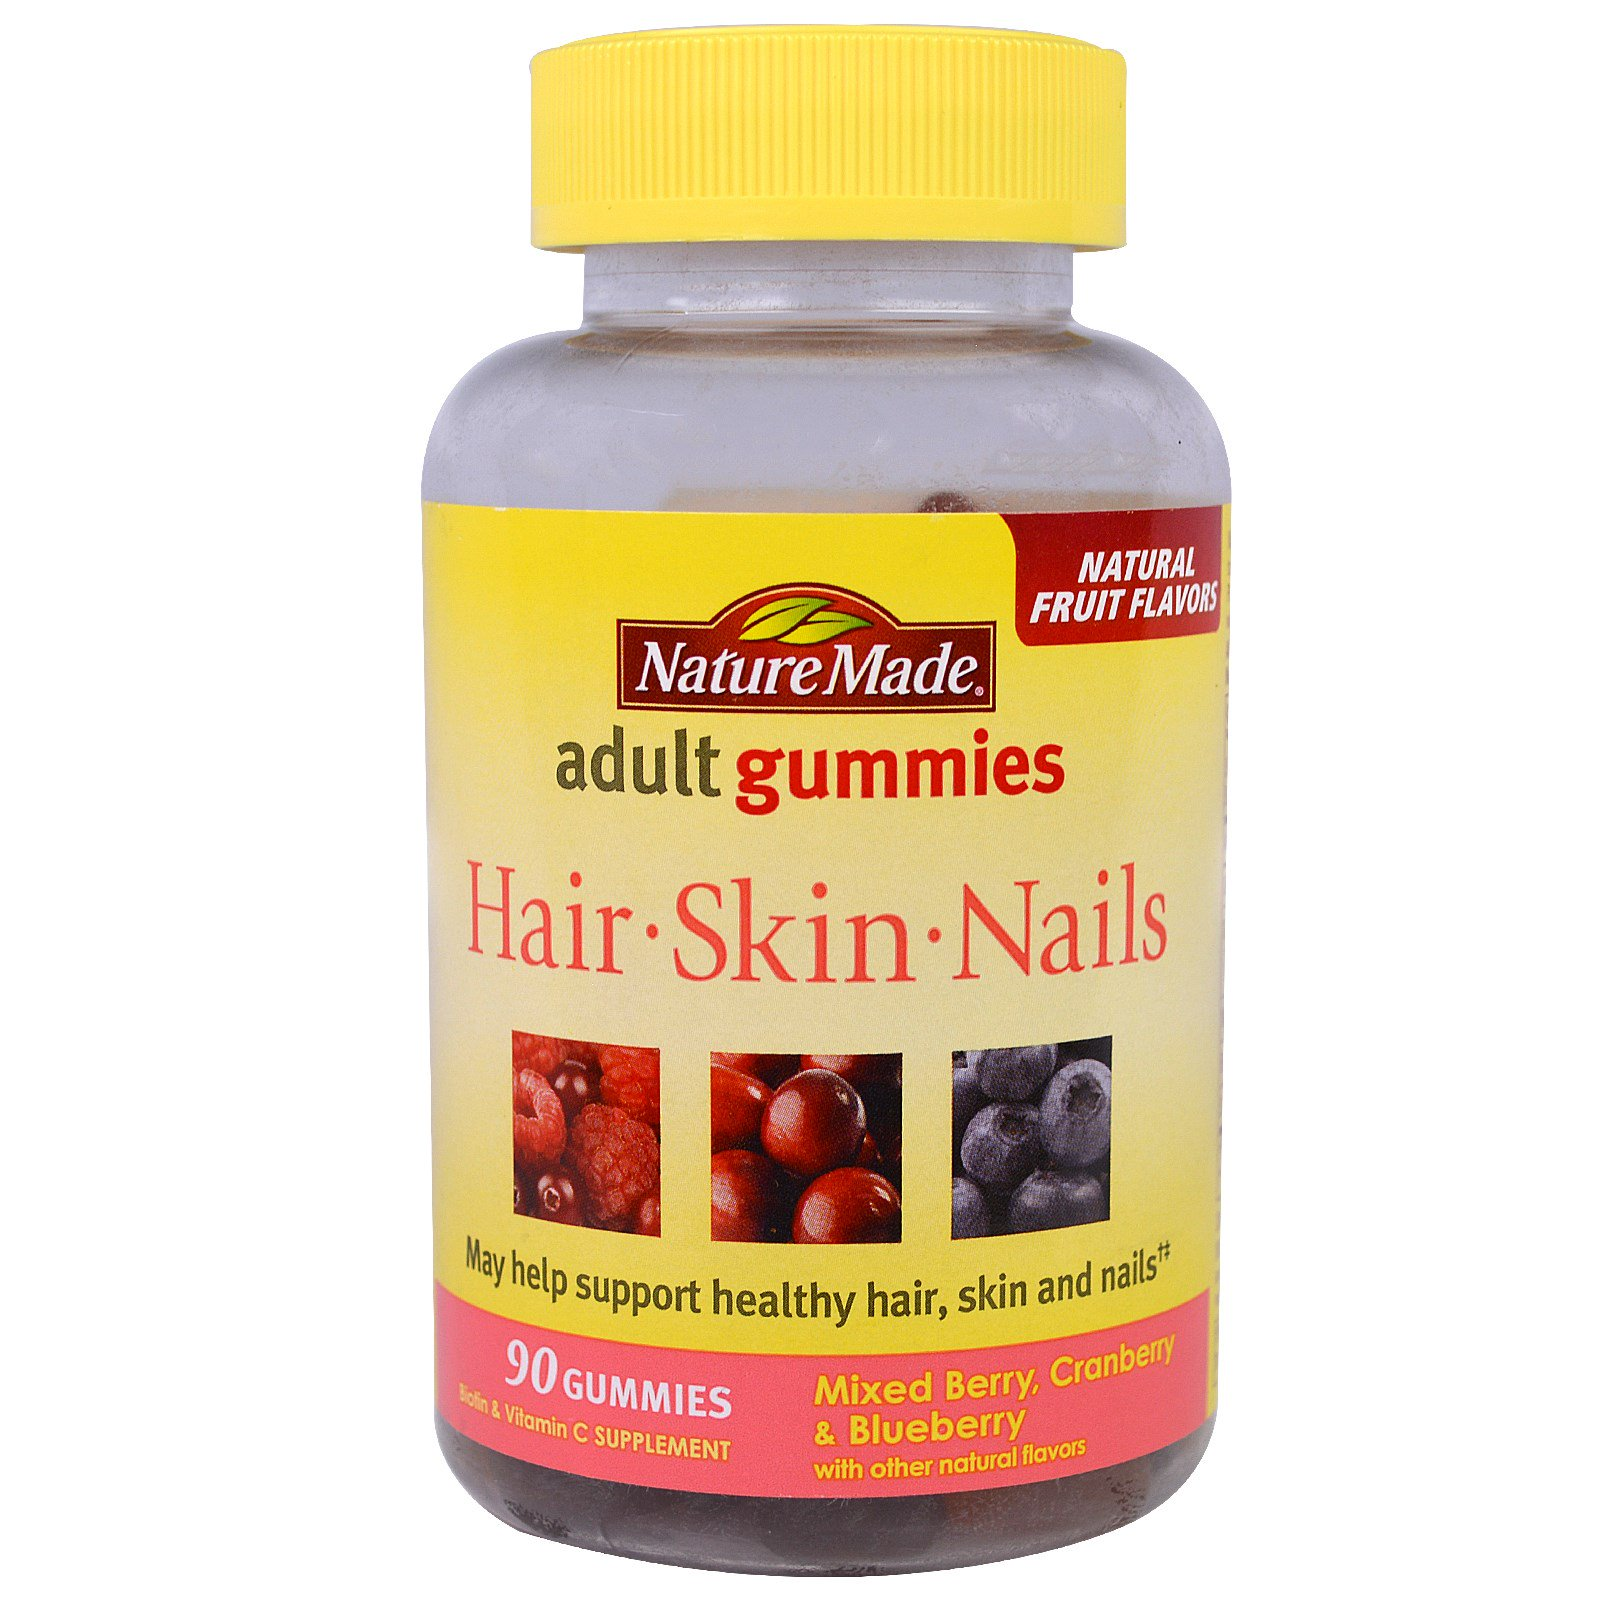 Nature Made Hair Skin Nails Gummies Reviews